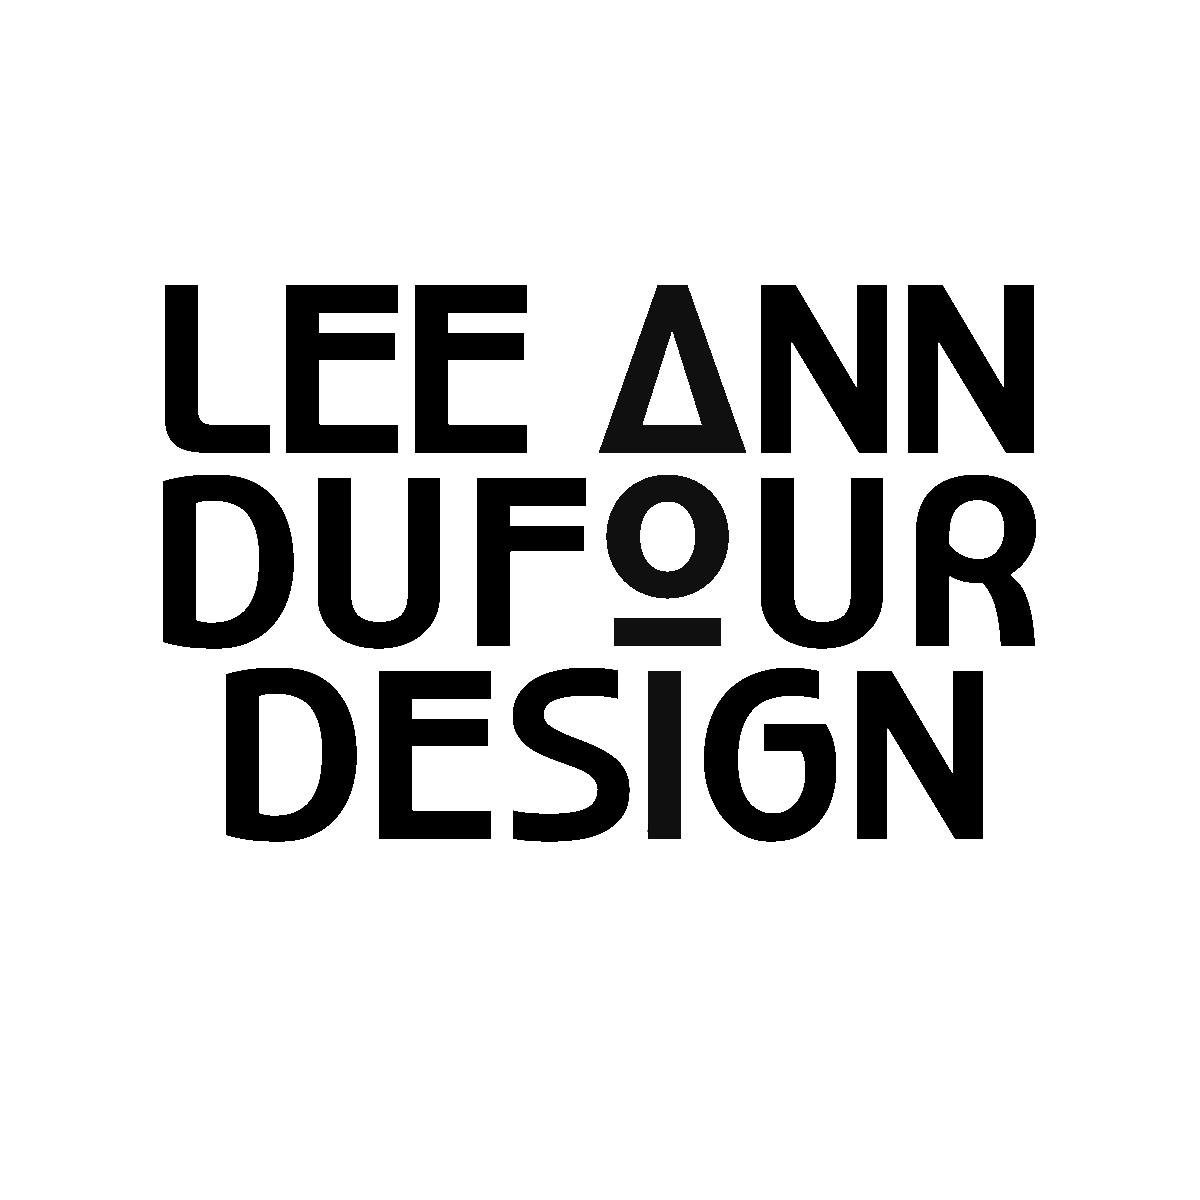 Lee Ann Dufour Design